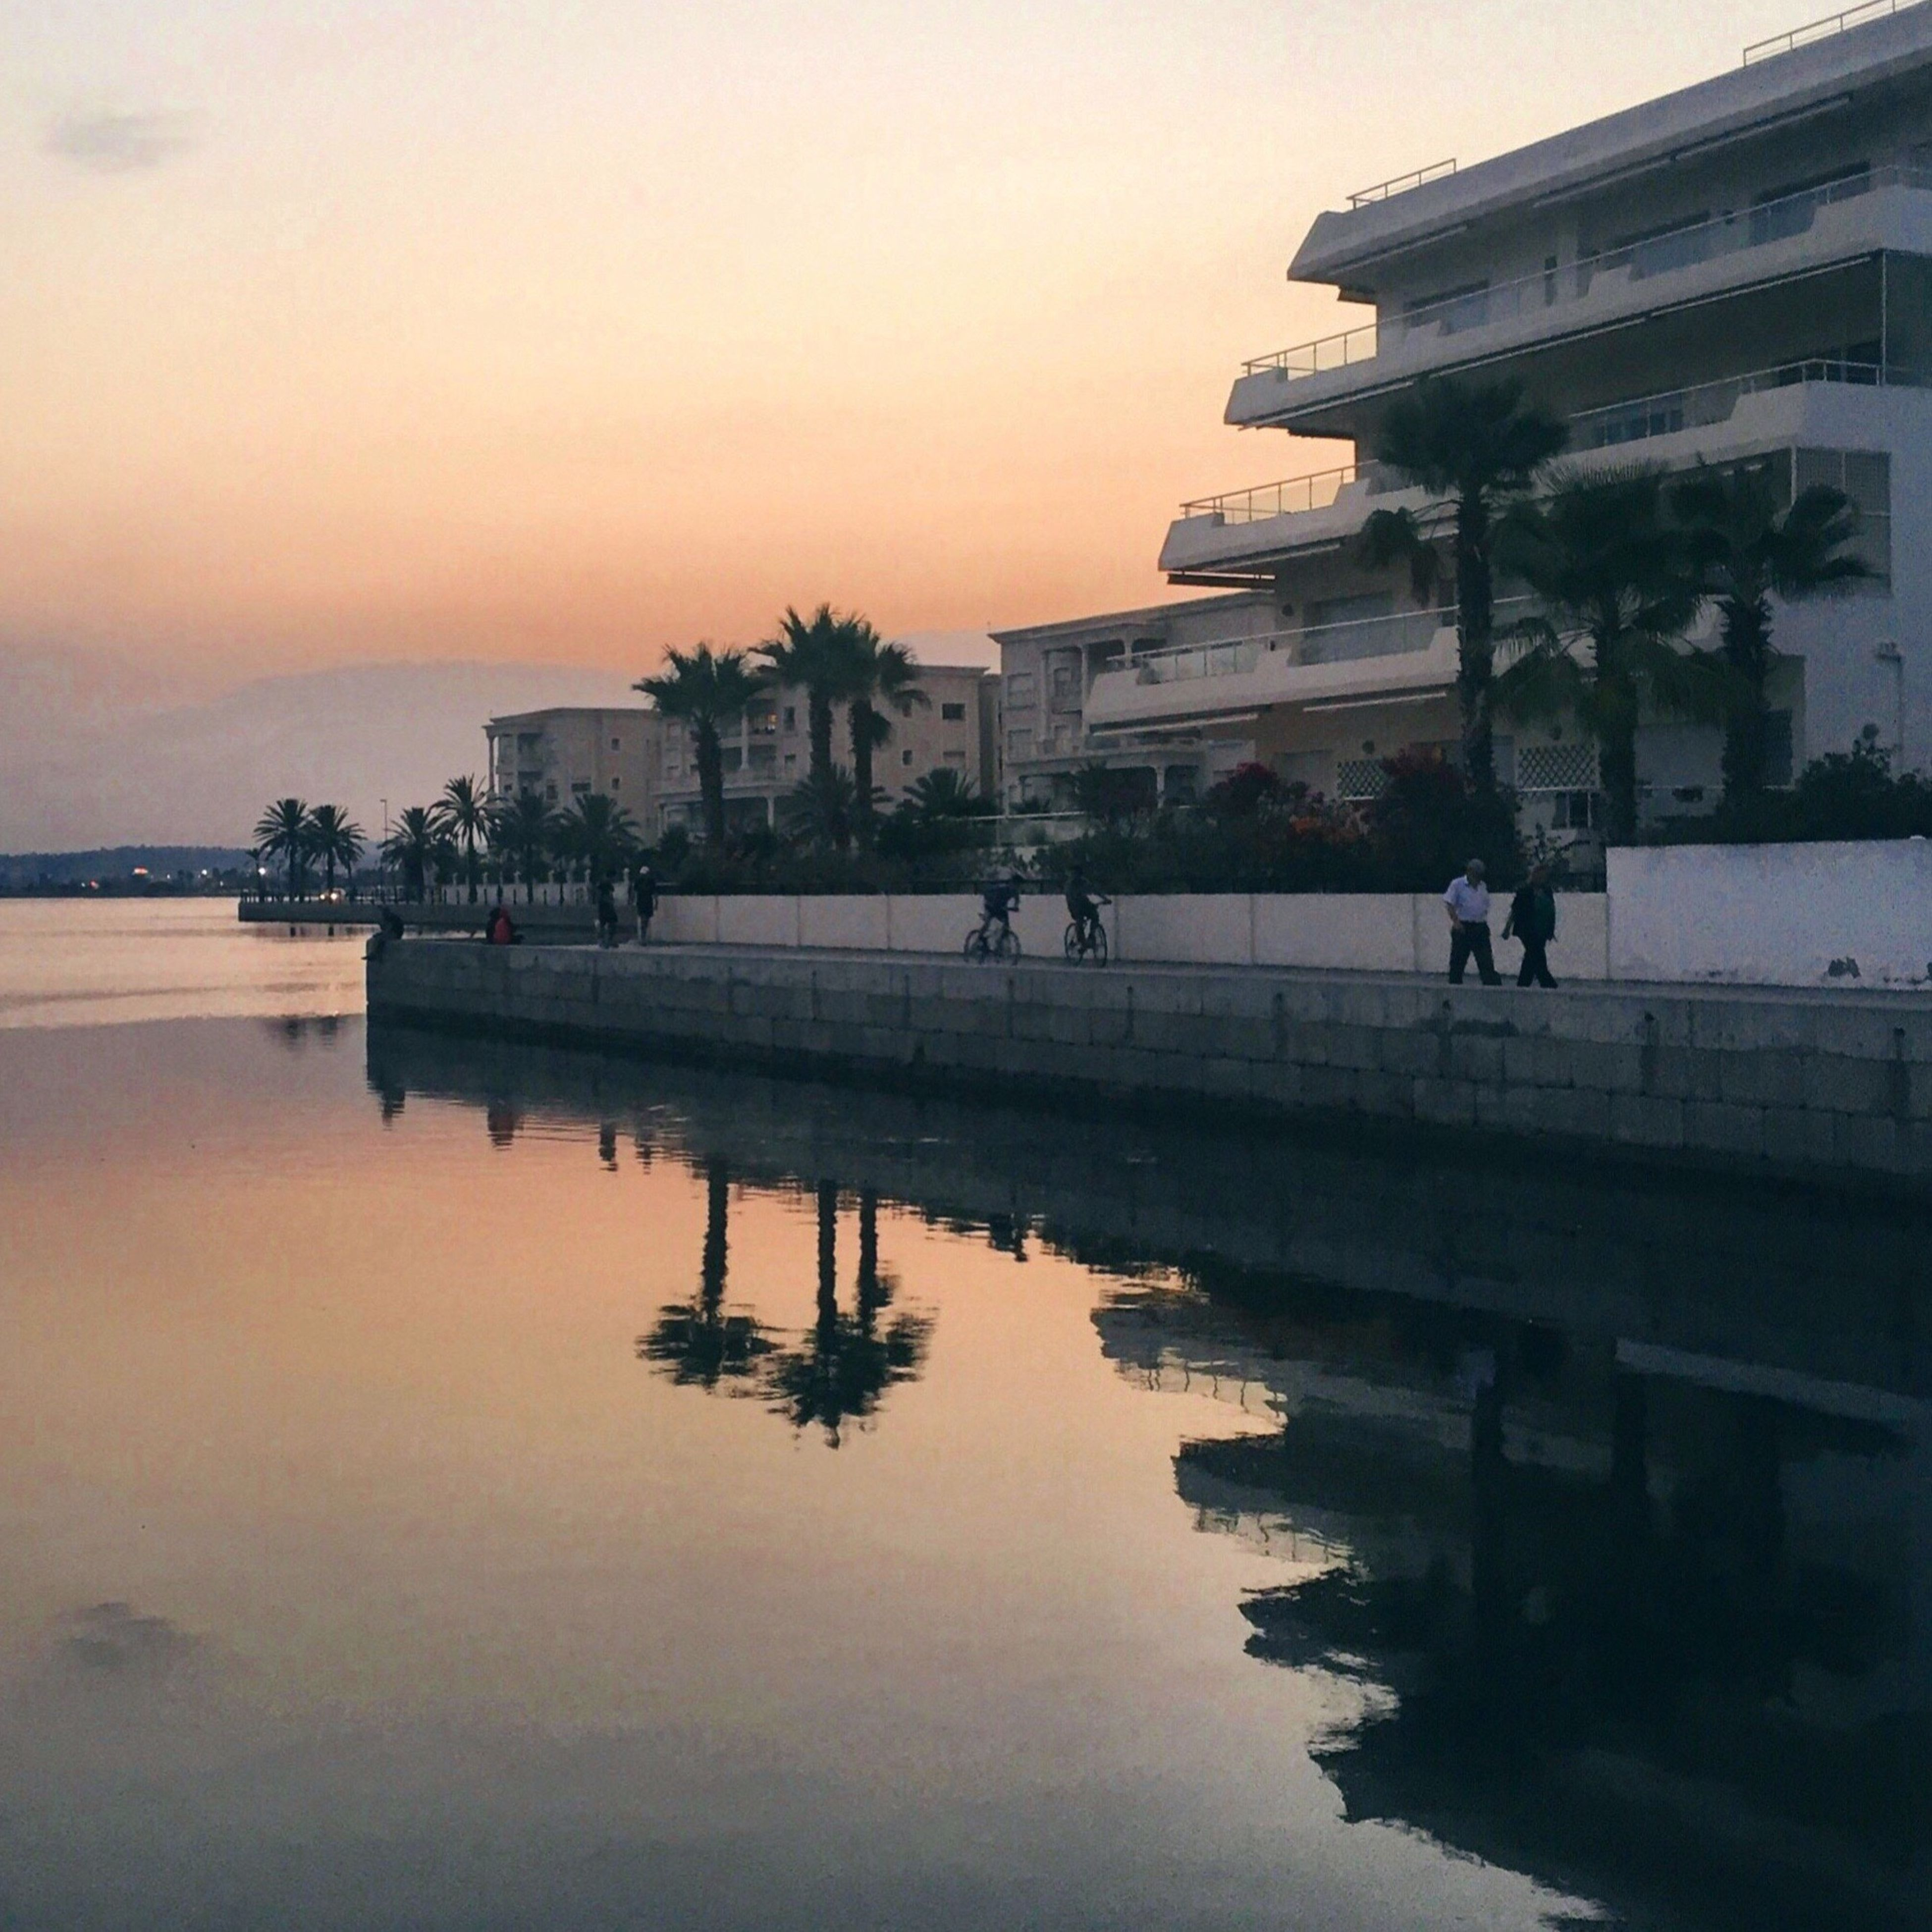 architecture, built structure, building exterior, sunset, water, large group of people, person, men, lifestyles, dusk, leisure activity, orange color, sky, group of people, city life, tourism, vacations, outdoors, waterfront, history, tranquility, scenics